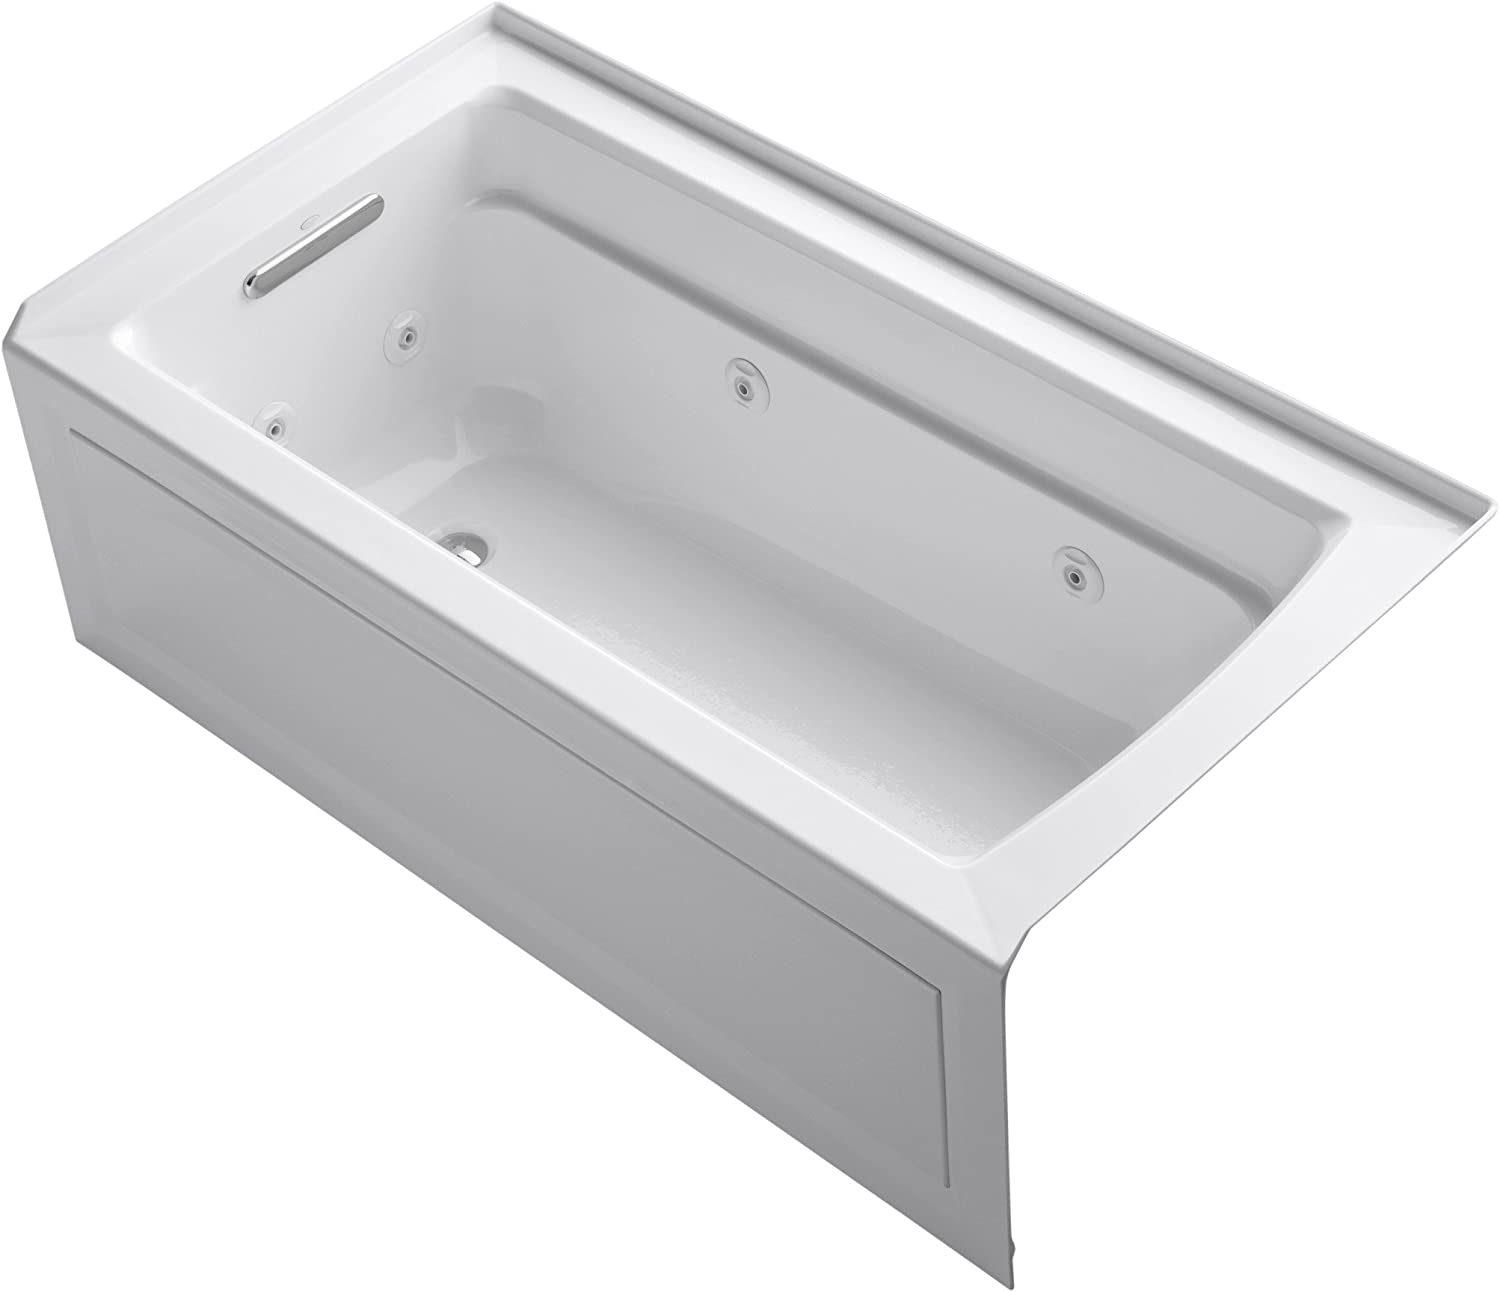 Best Whirlpool Tubs-Best performance: KOHLER K-1122-LA-0 Archer Tub